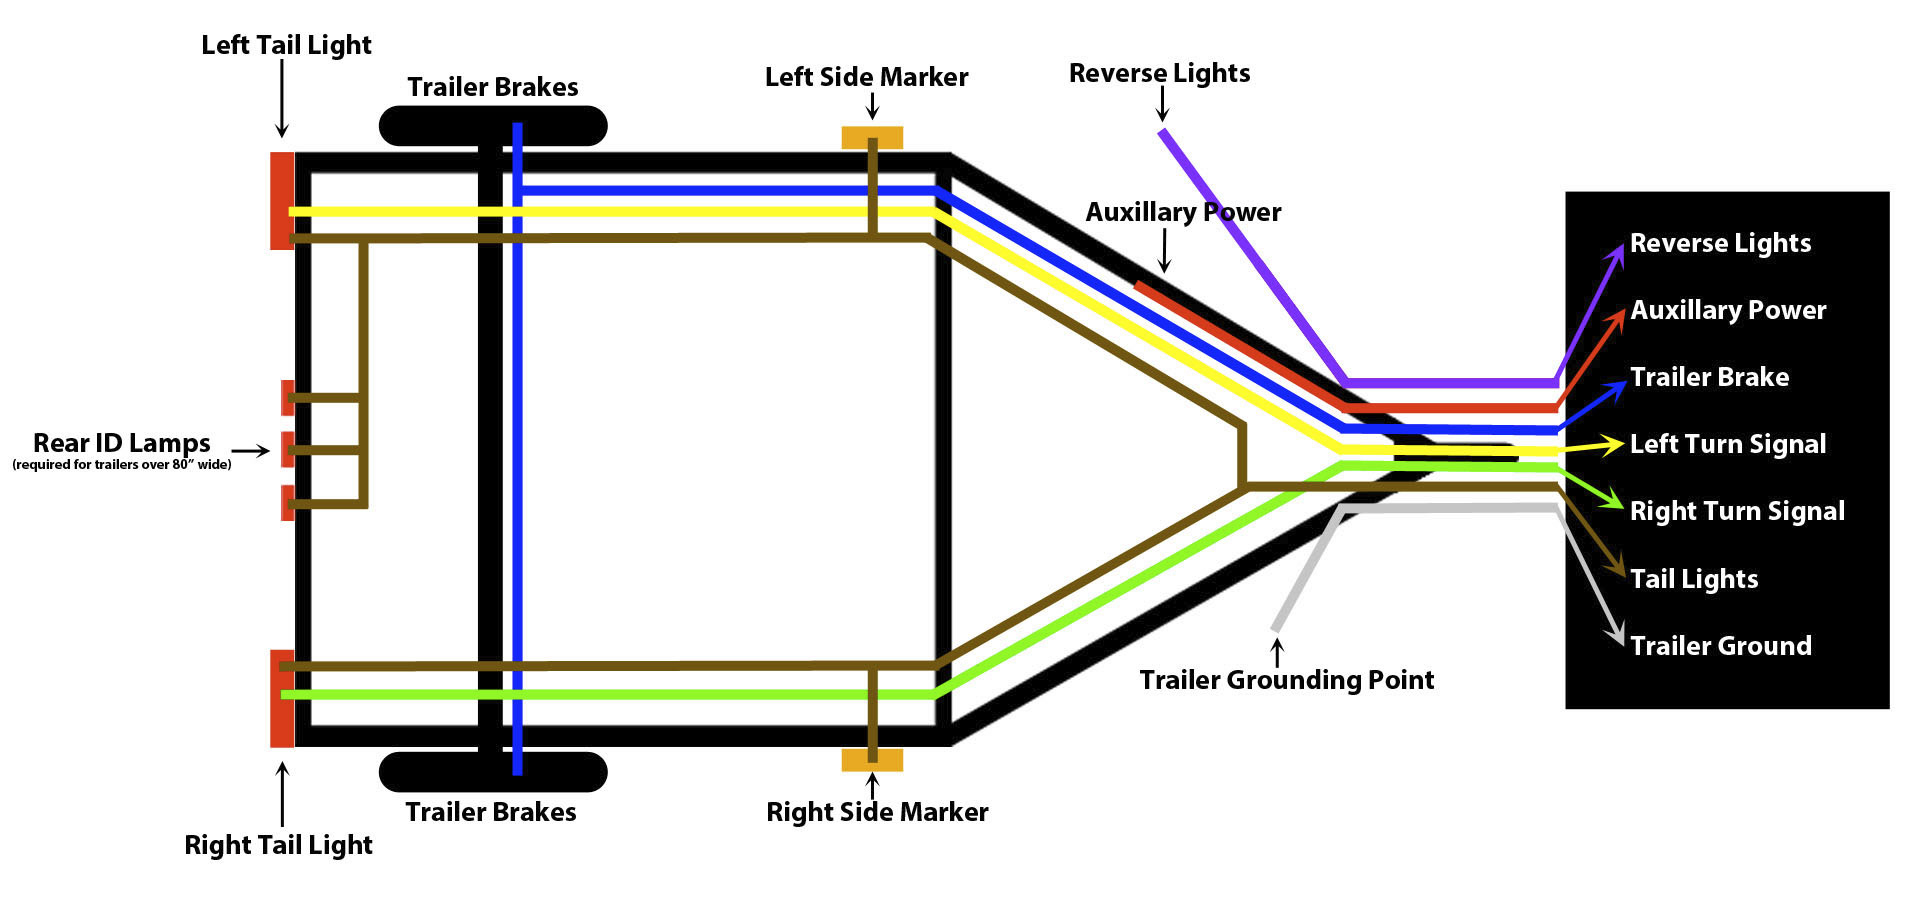 Jeep Trailer Lights Wiring Diagram | Manual E-Books - Trailer Plugs Wiring Diagram